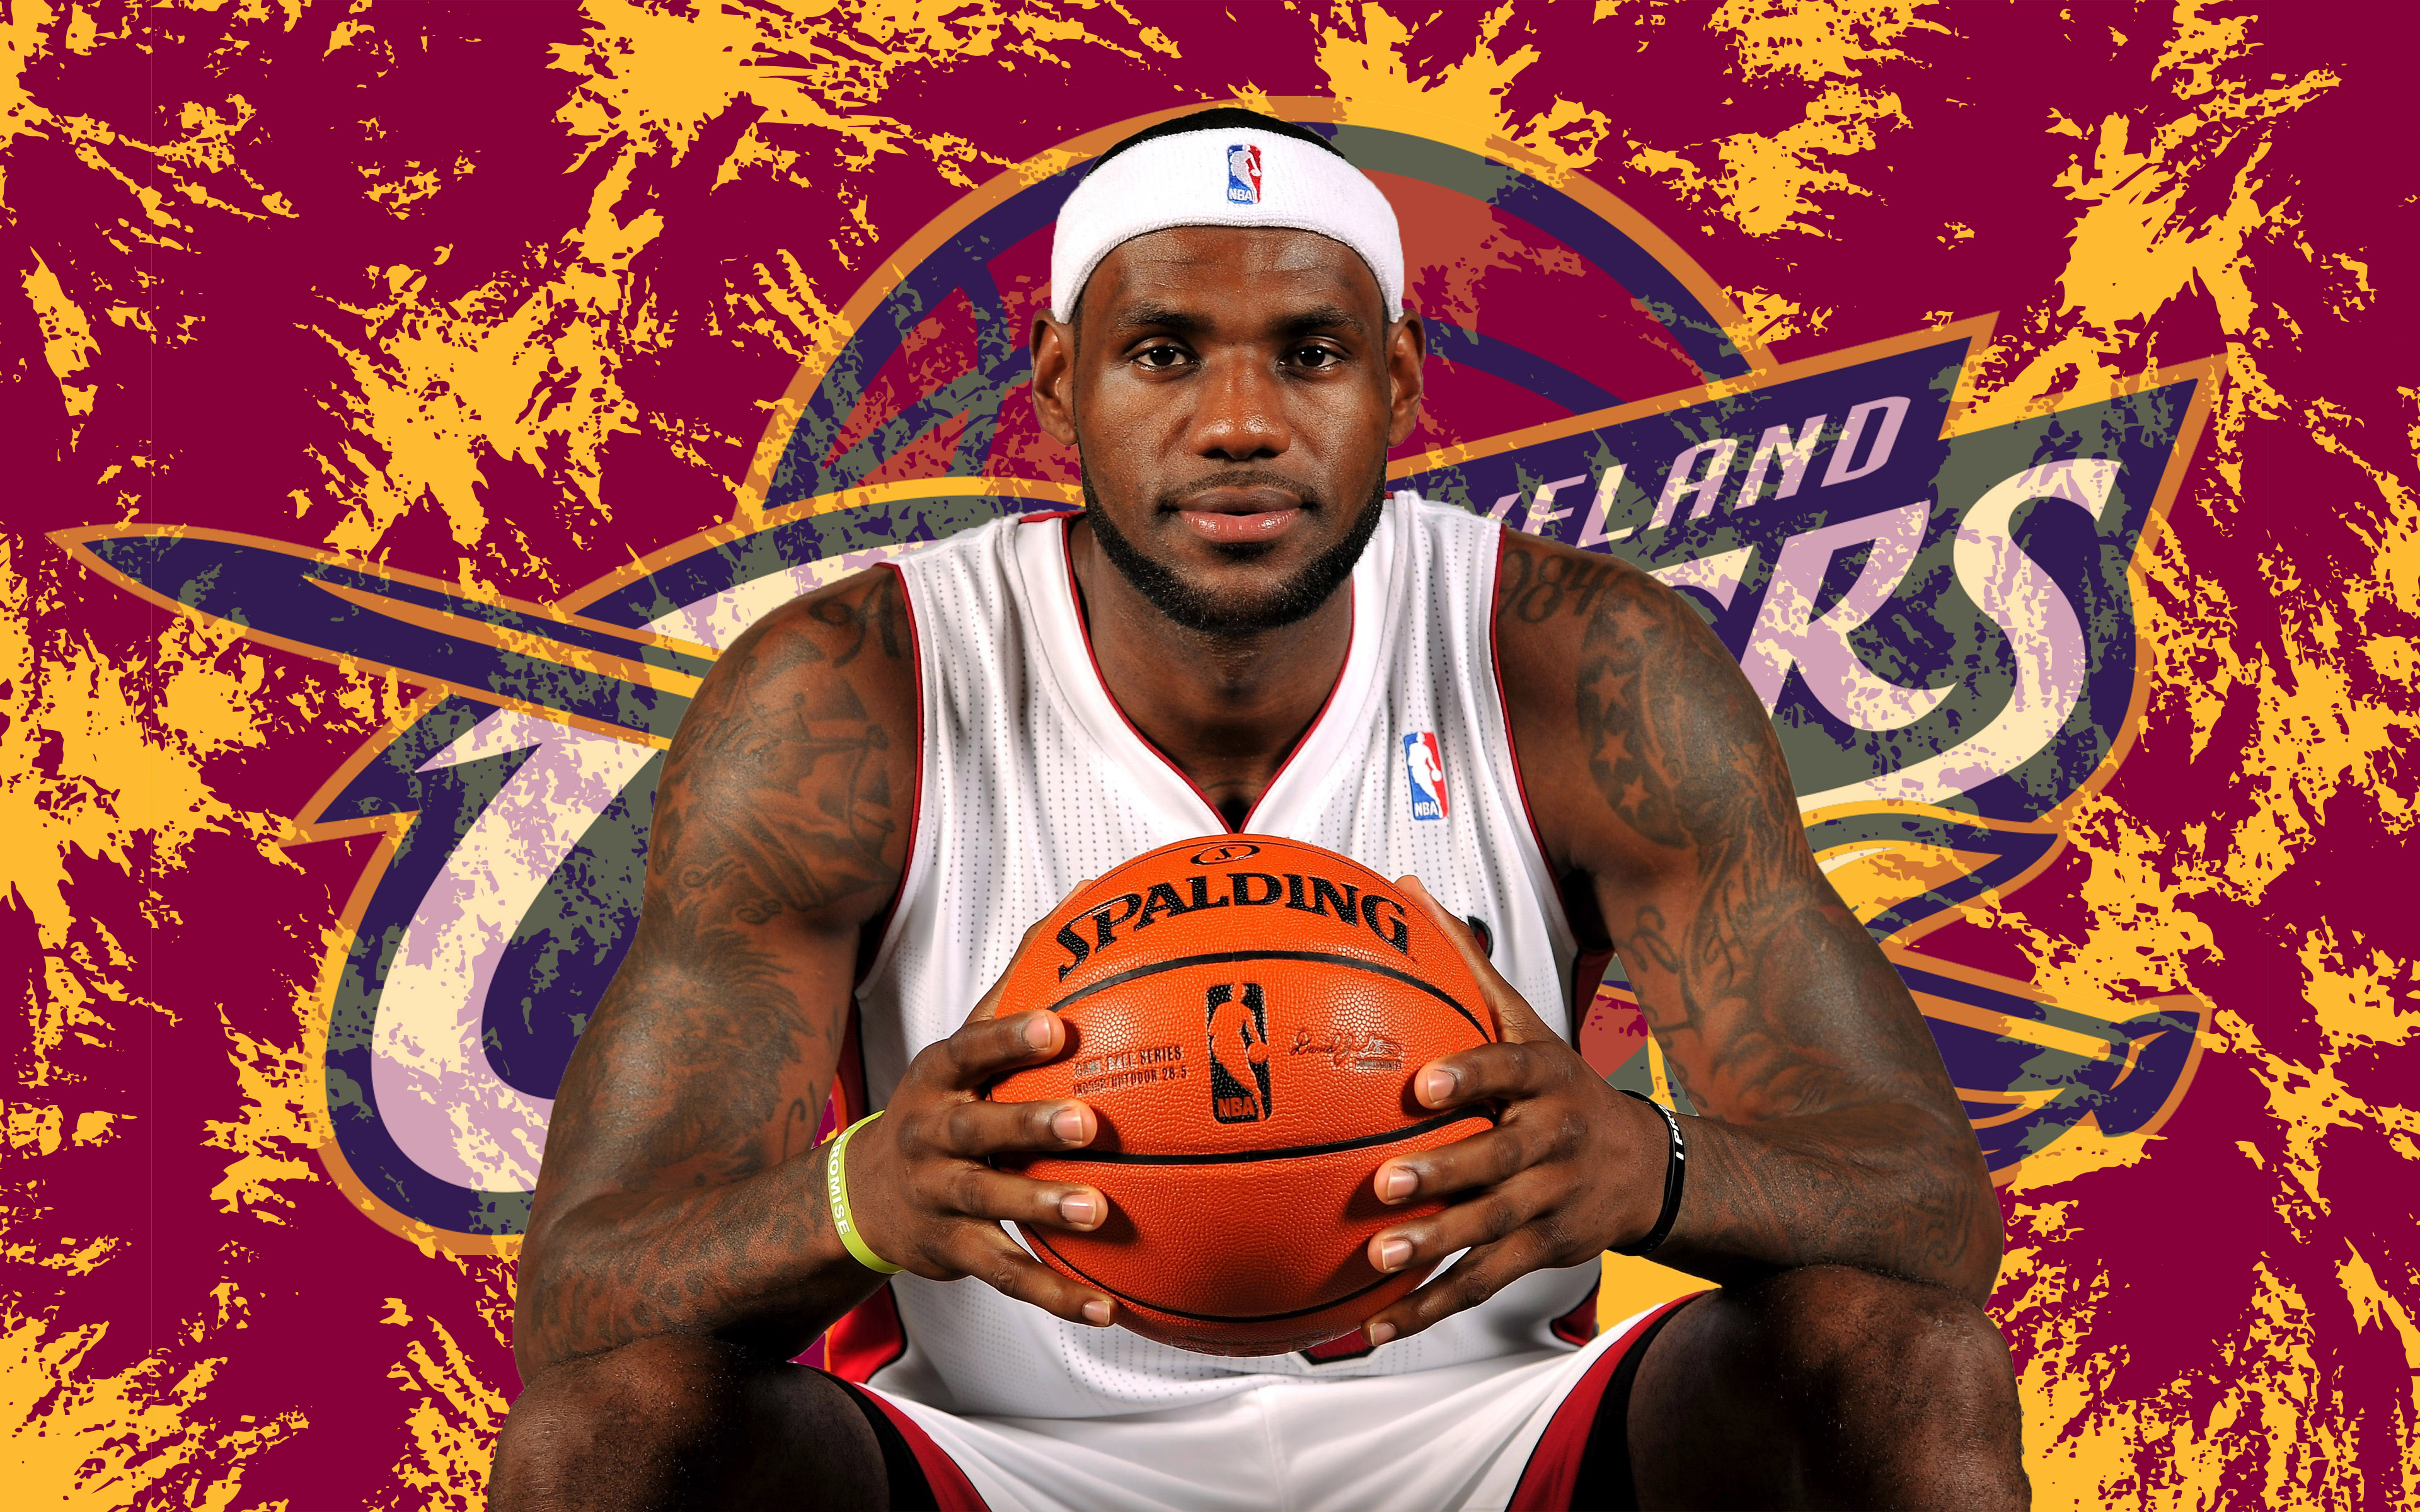 LeBron James 2014 Cleveland Cavaliers Wallpaper